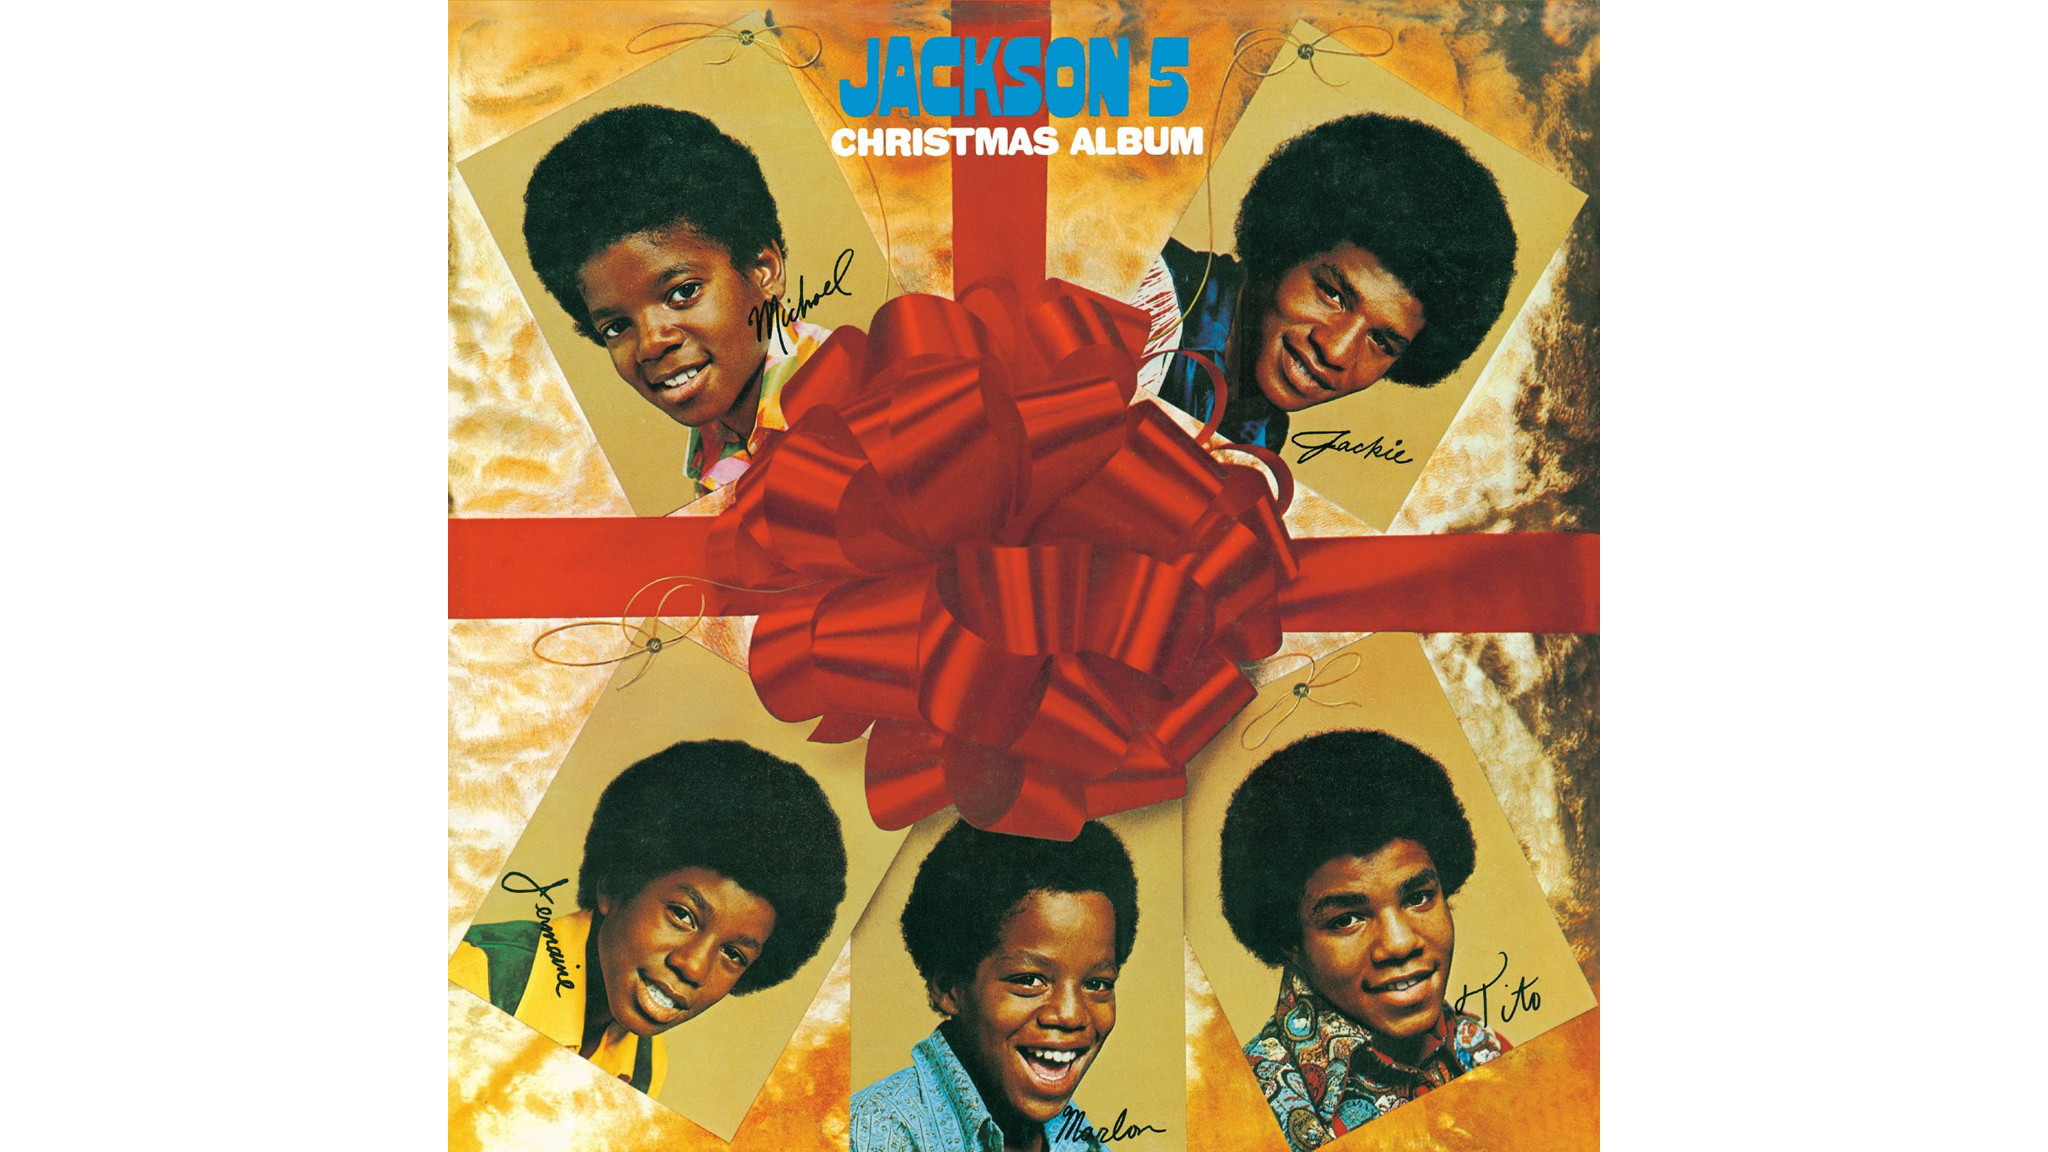 'Santa Claus is Coming to Town' – Jackson 5